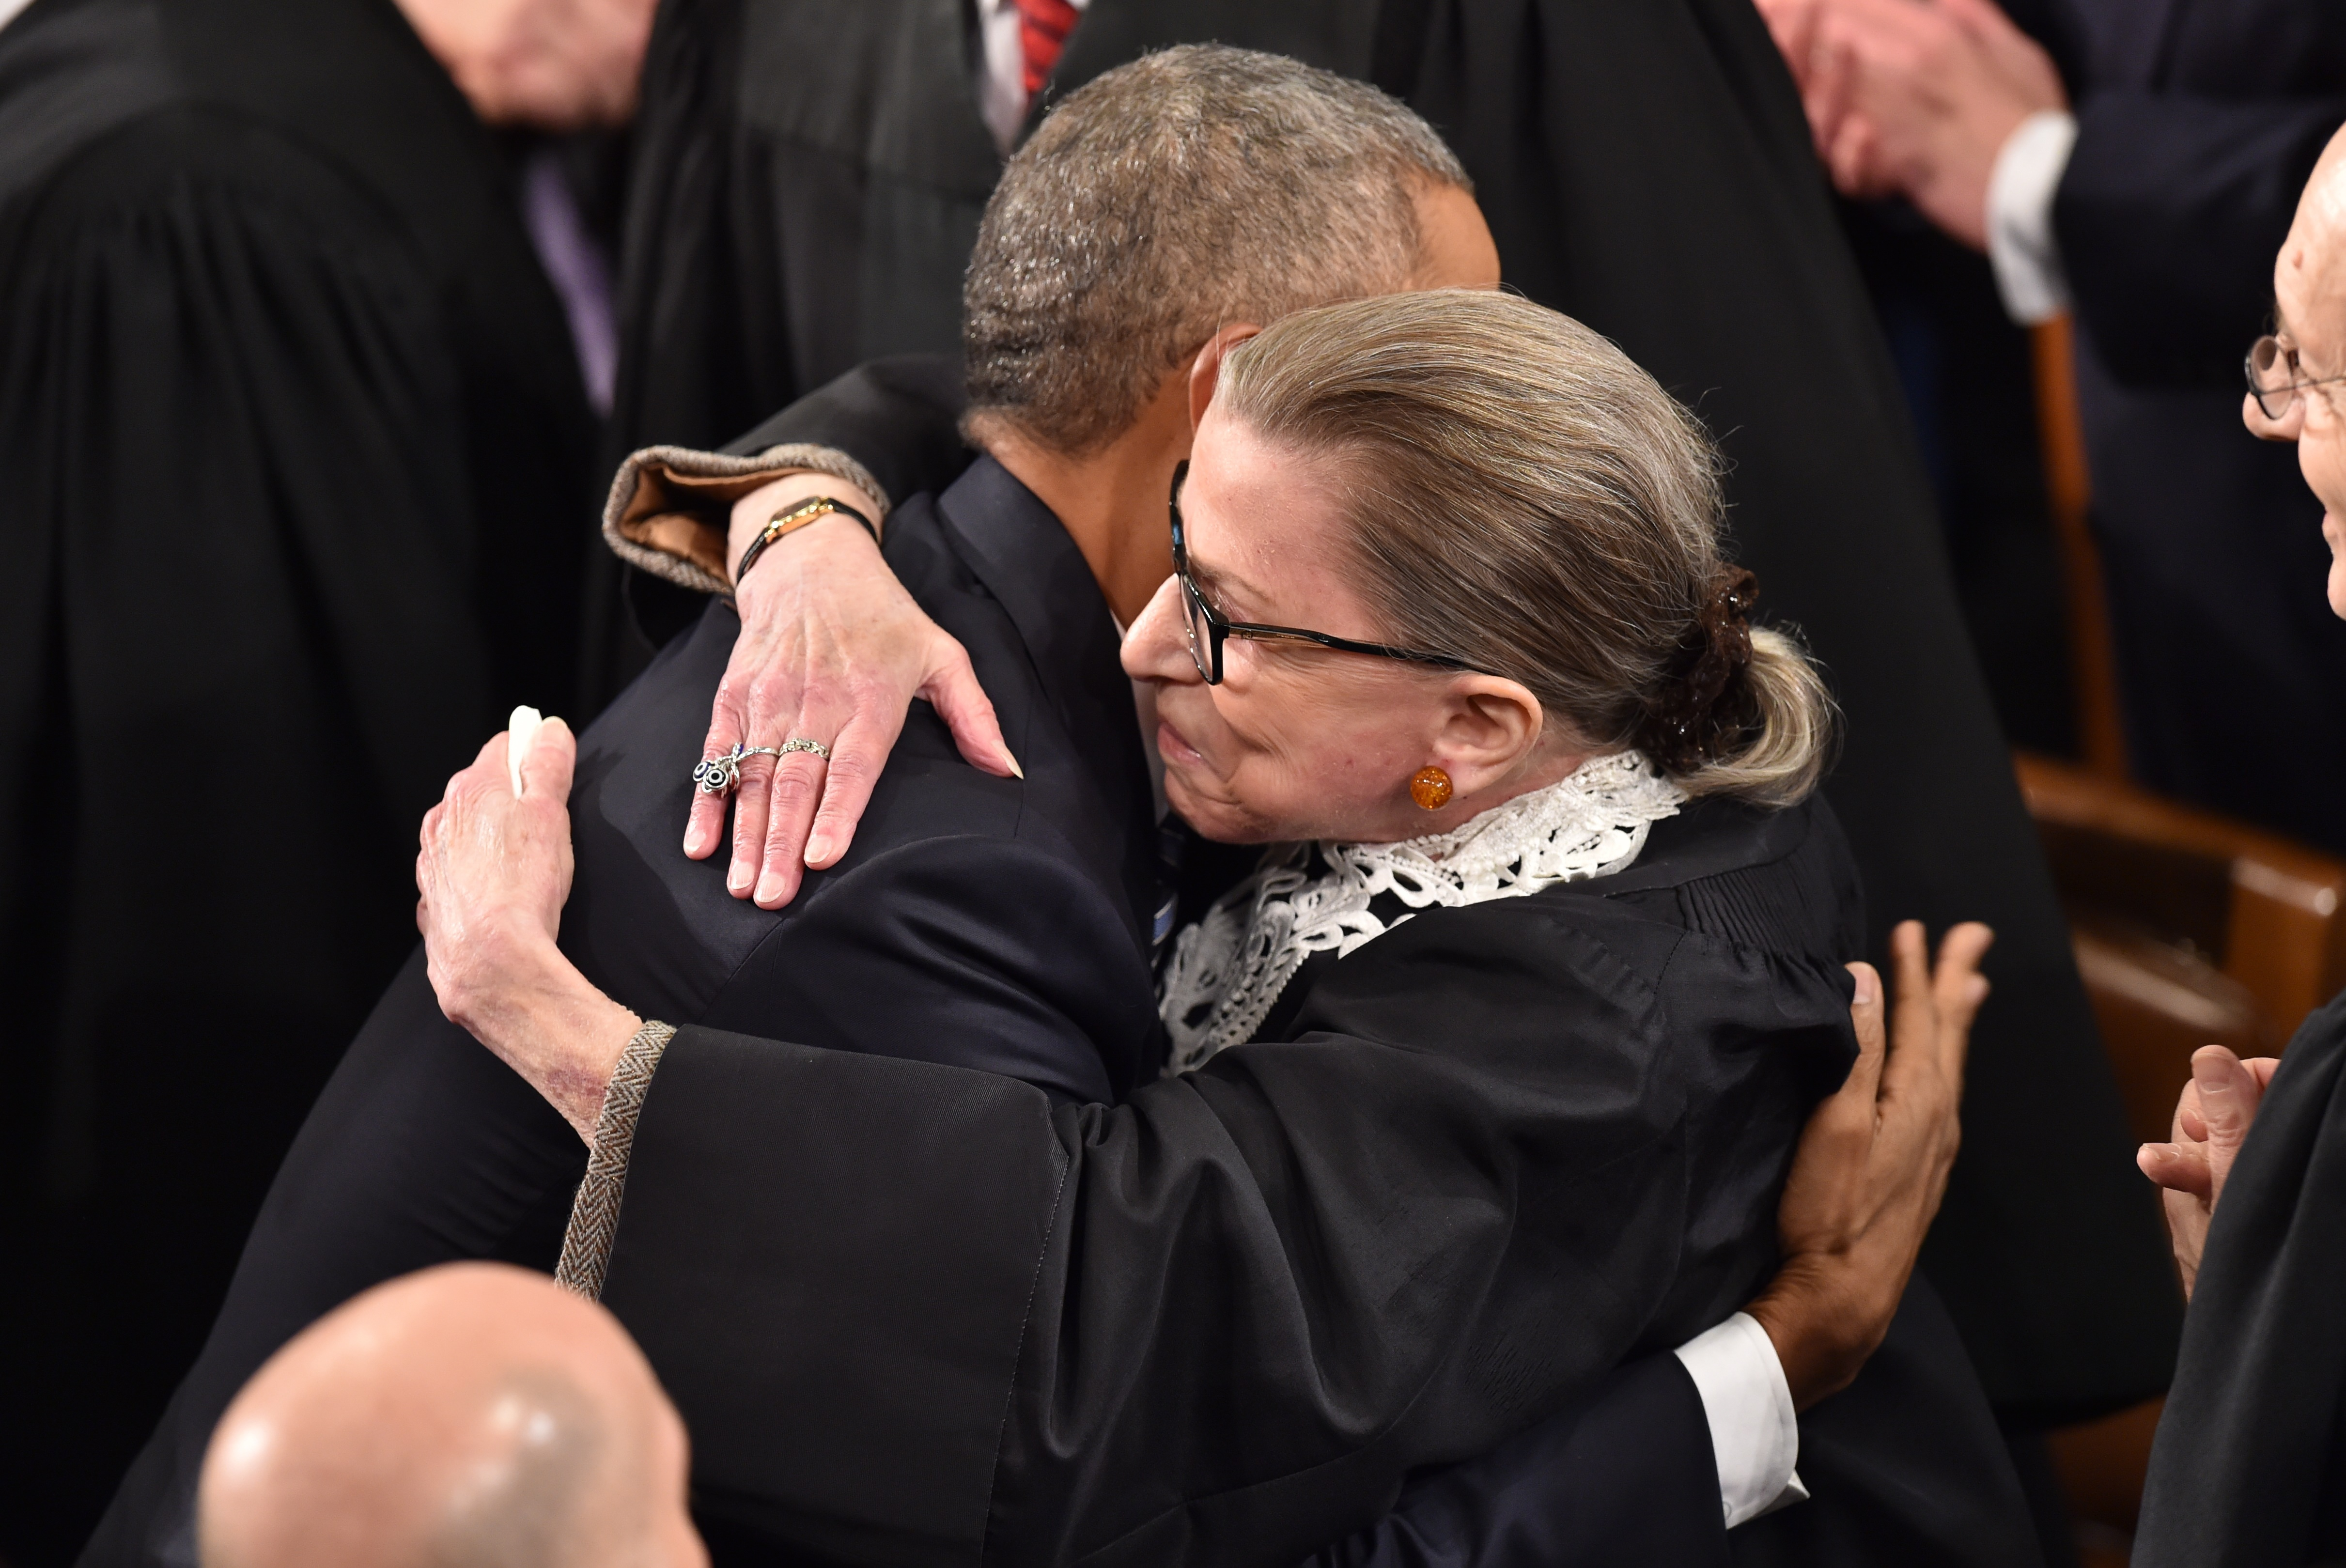 President Barack Obama greets Justice Ruth Bader Ginsburg as he arrives to deliver the State of the Union address on January 12, 2016. (Nicholas Kamm/AFP/Getty Images)